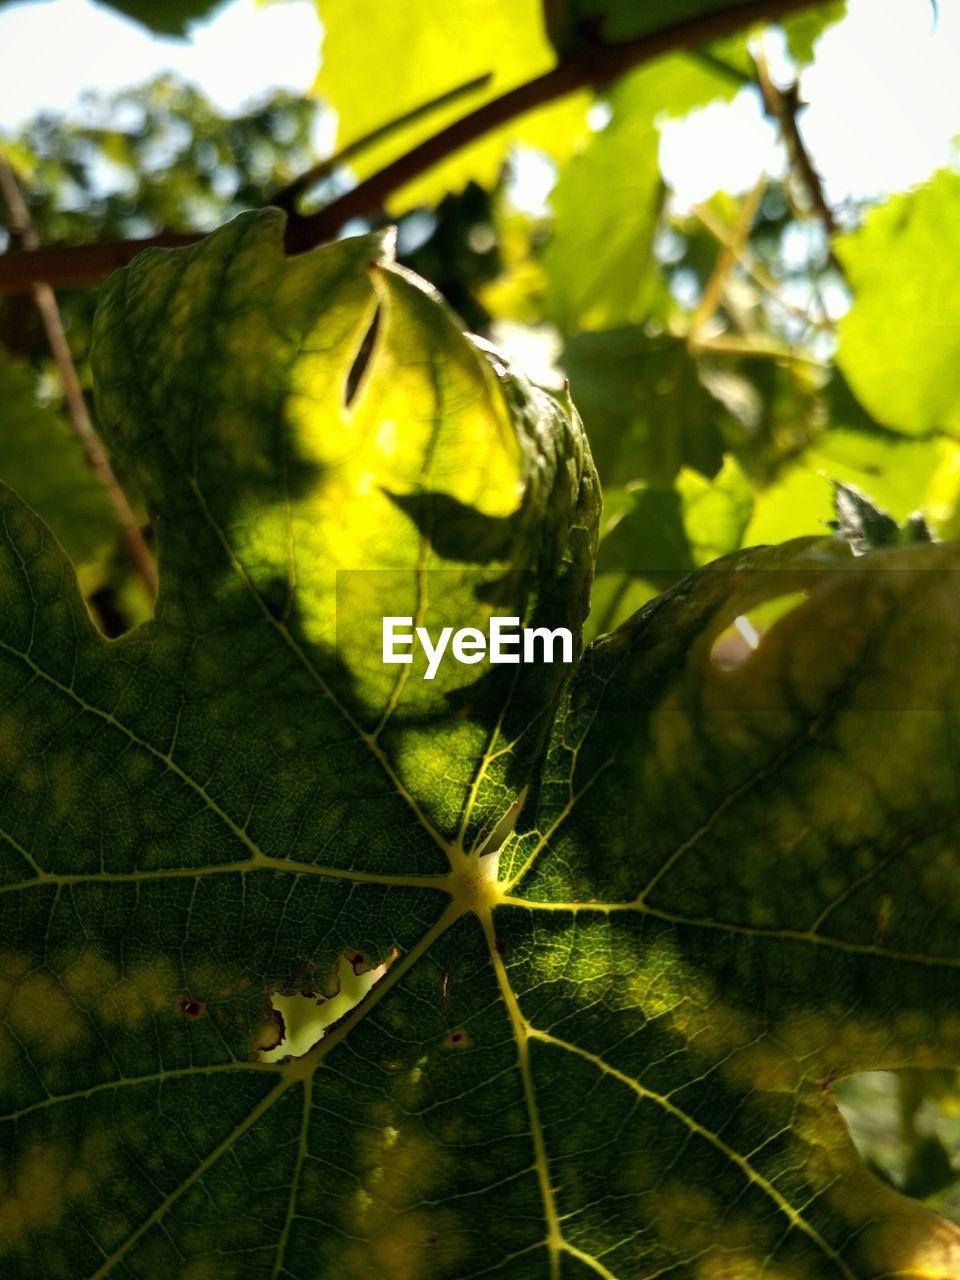 leaf, green color, growth, close-up, nature, day, no people, beauty in nature, outdoors, fruit, freshness